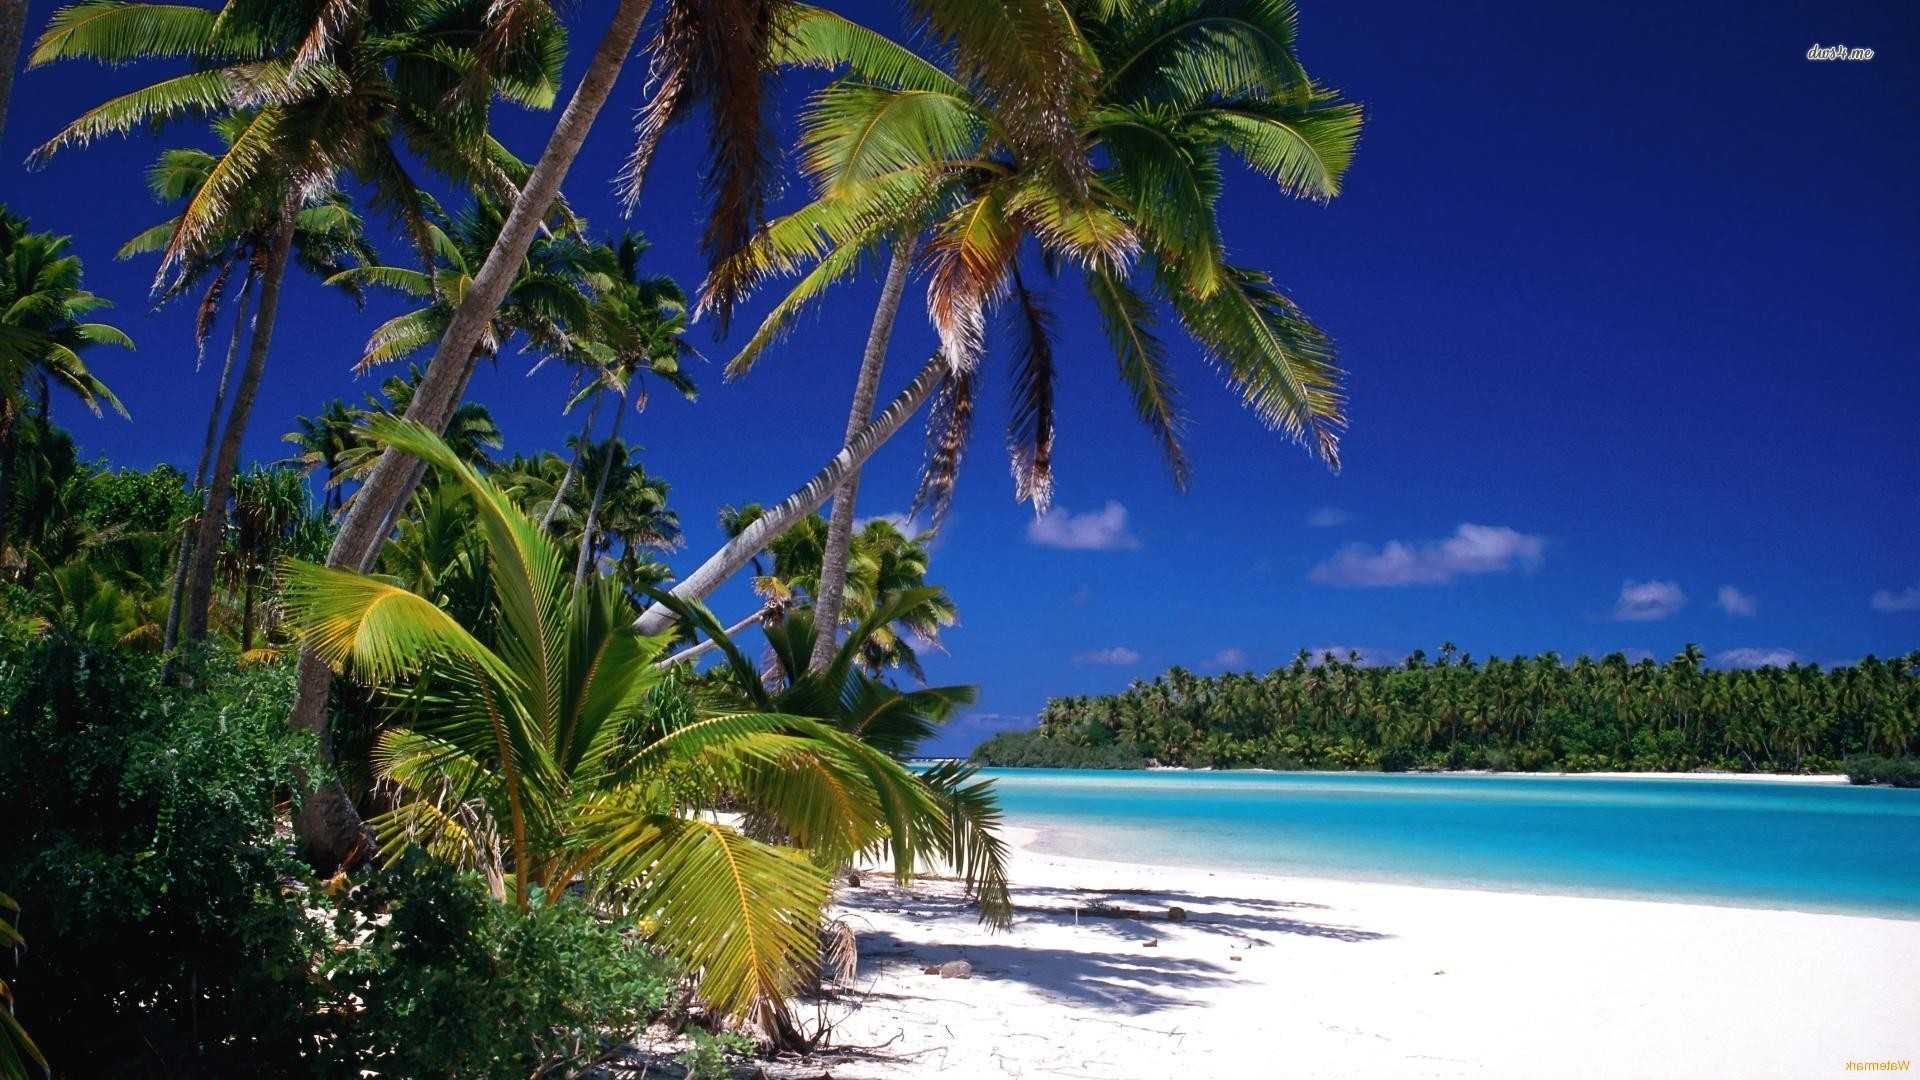 cook islands Desktop Backgrounds for HD Wallpaper wall  art 1920x1080